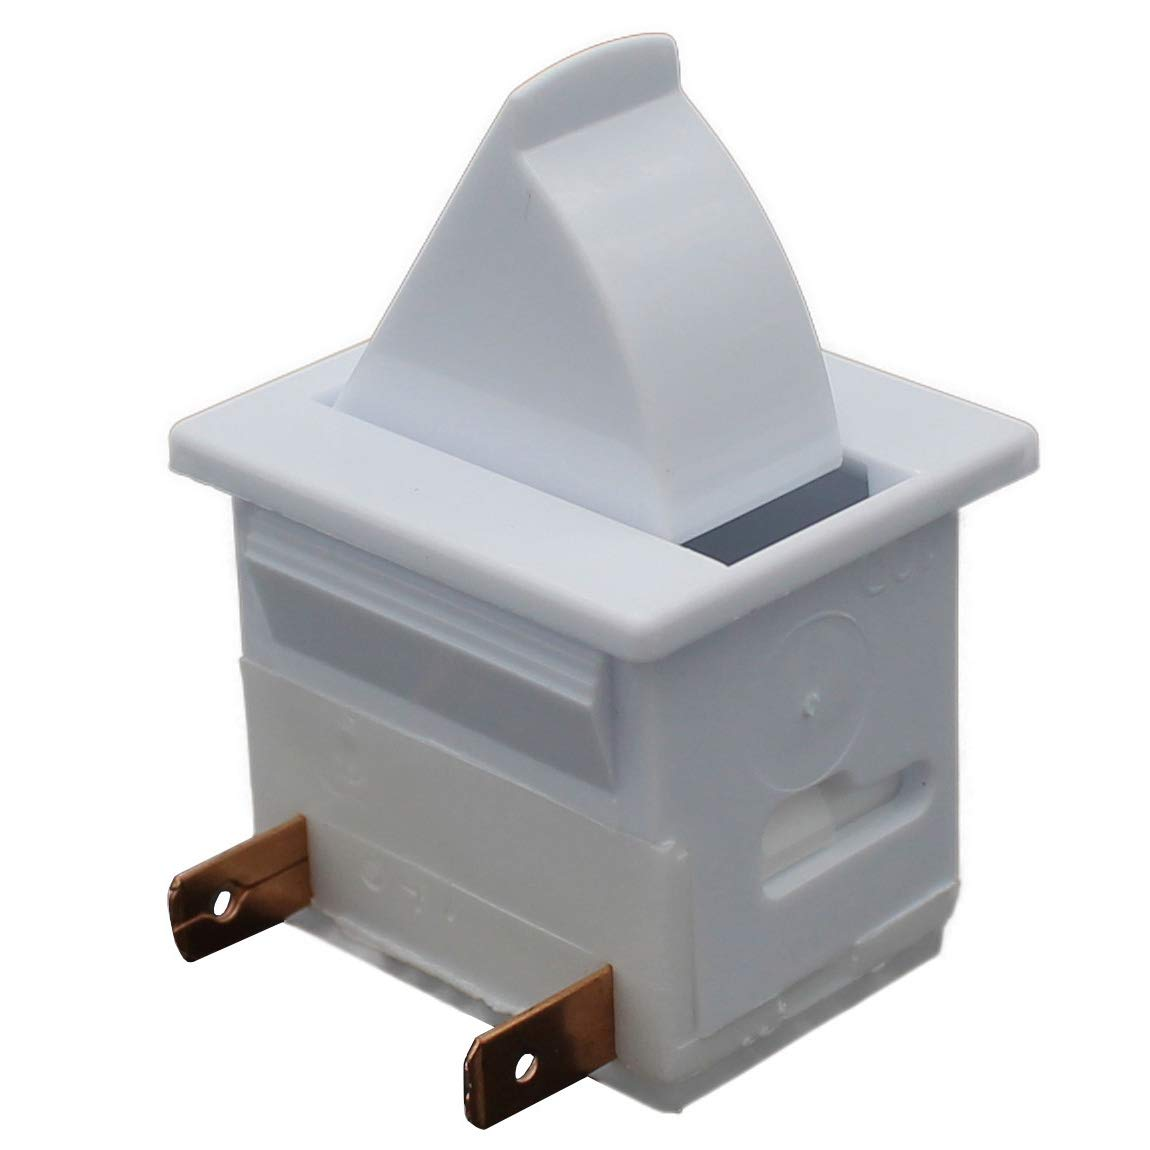 Supplying Demand WR23X23343 WR23X10530 Light Switch For Refrigerator Compatible With GE WR23X10175